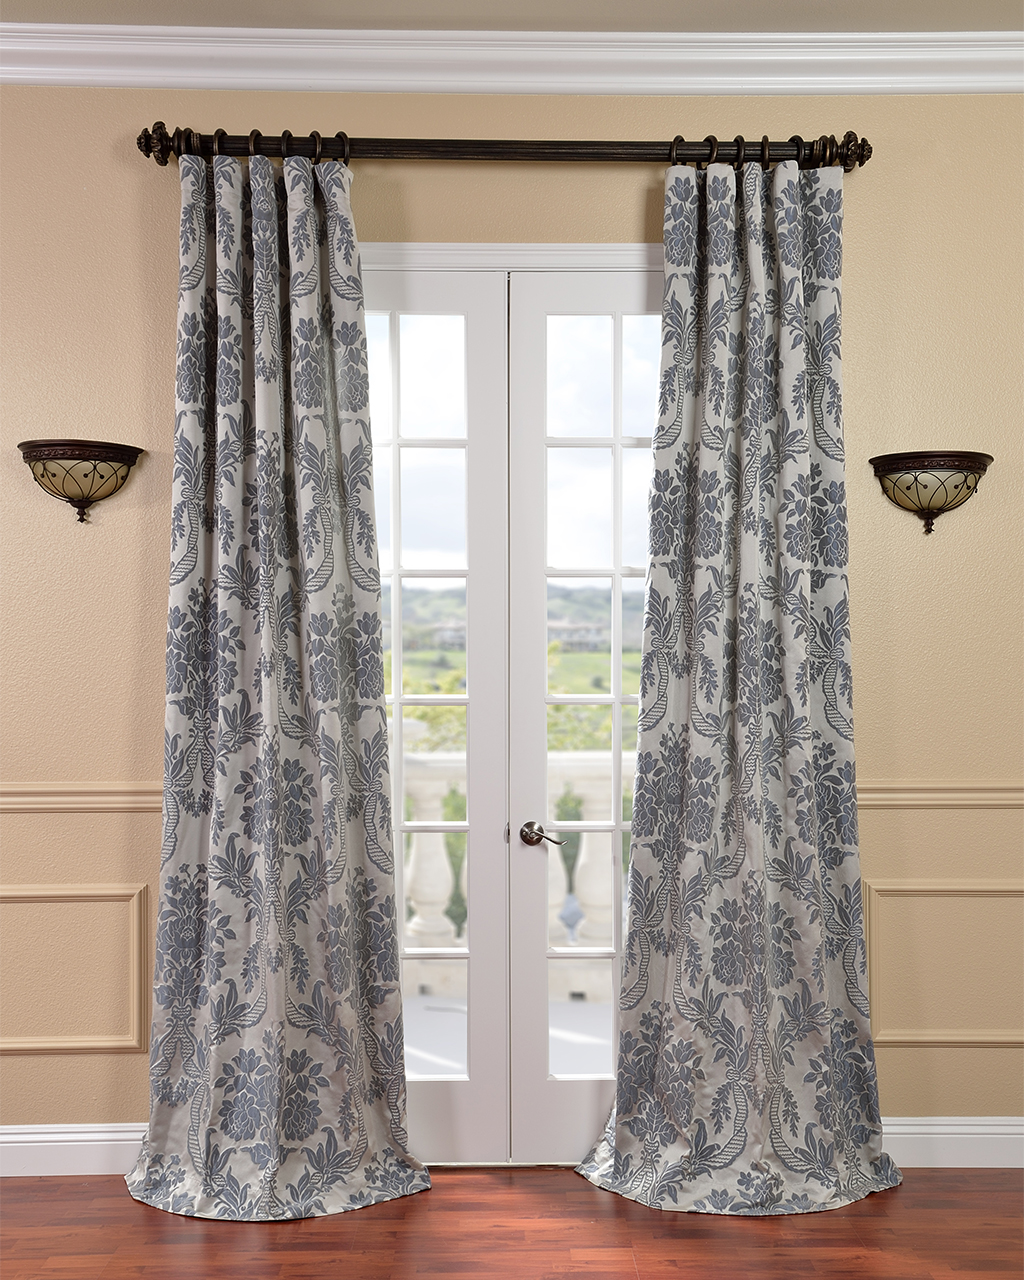 Curtains For A Bedroom Big Window Blue Room Bow Boys